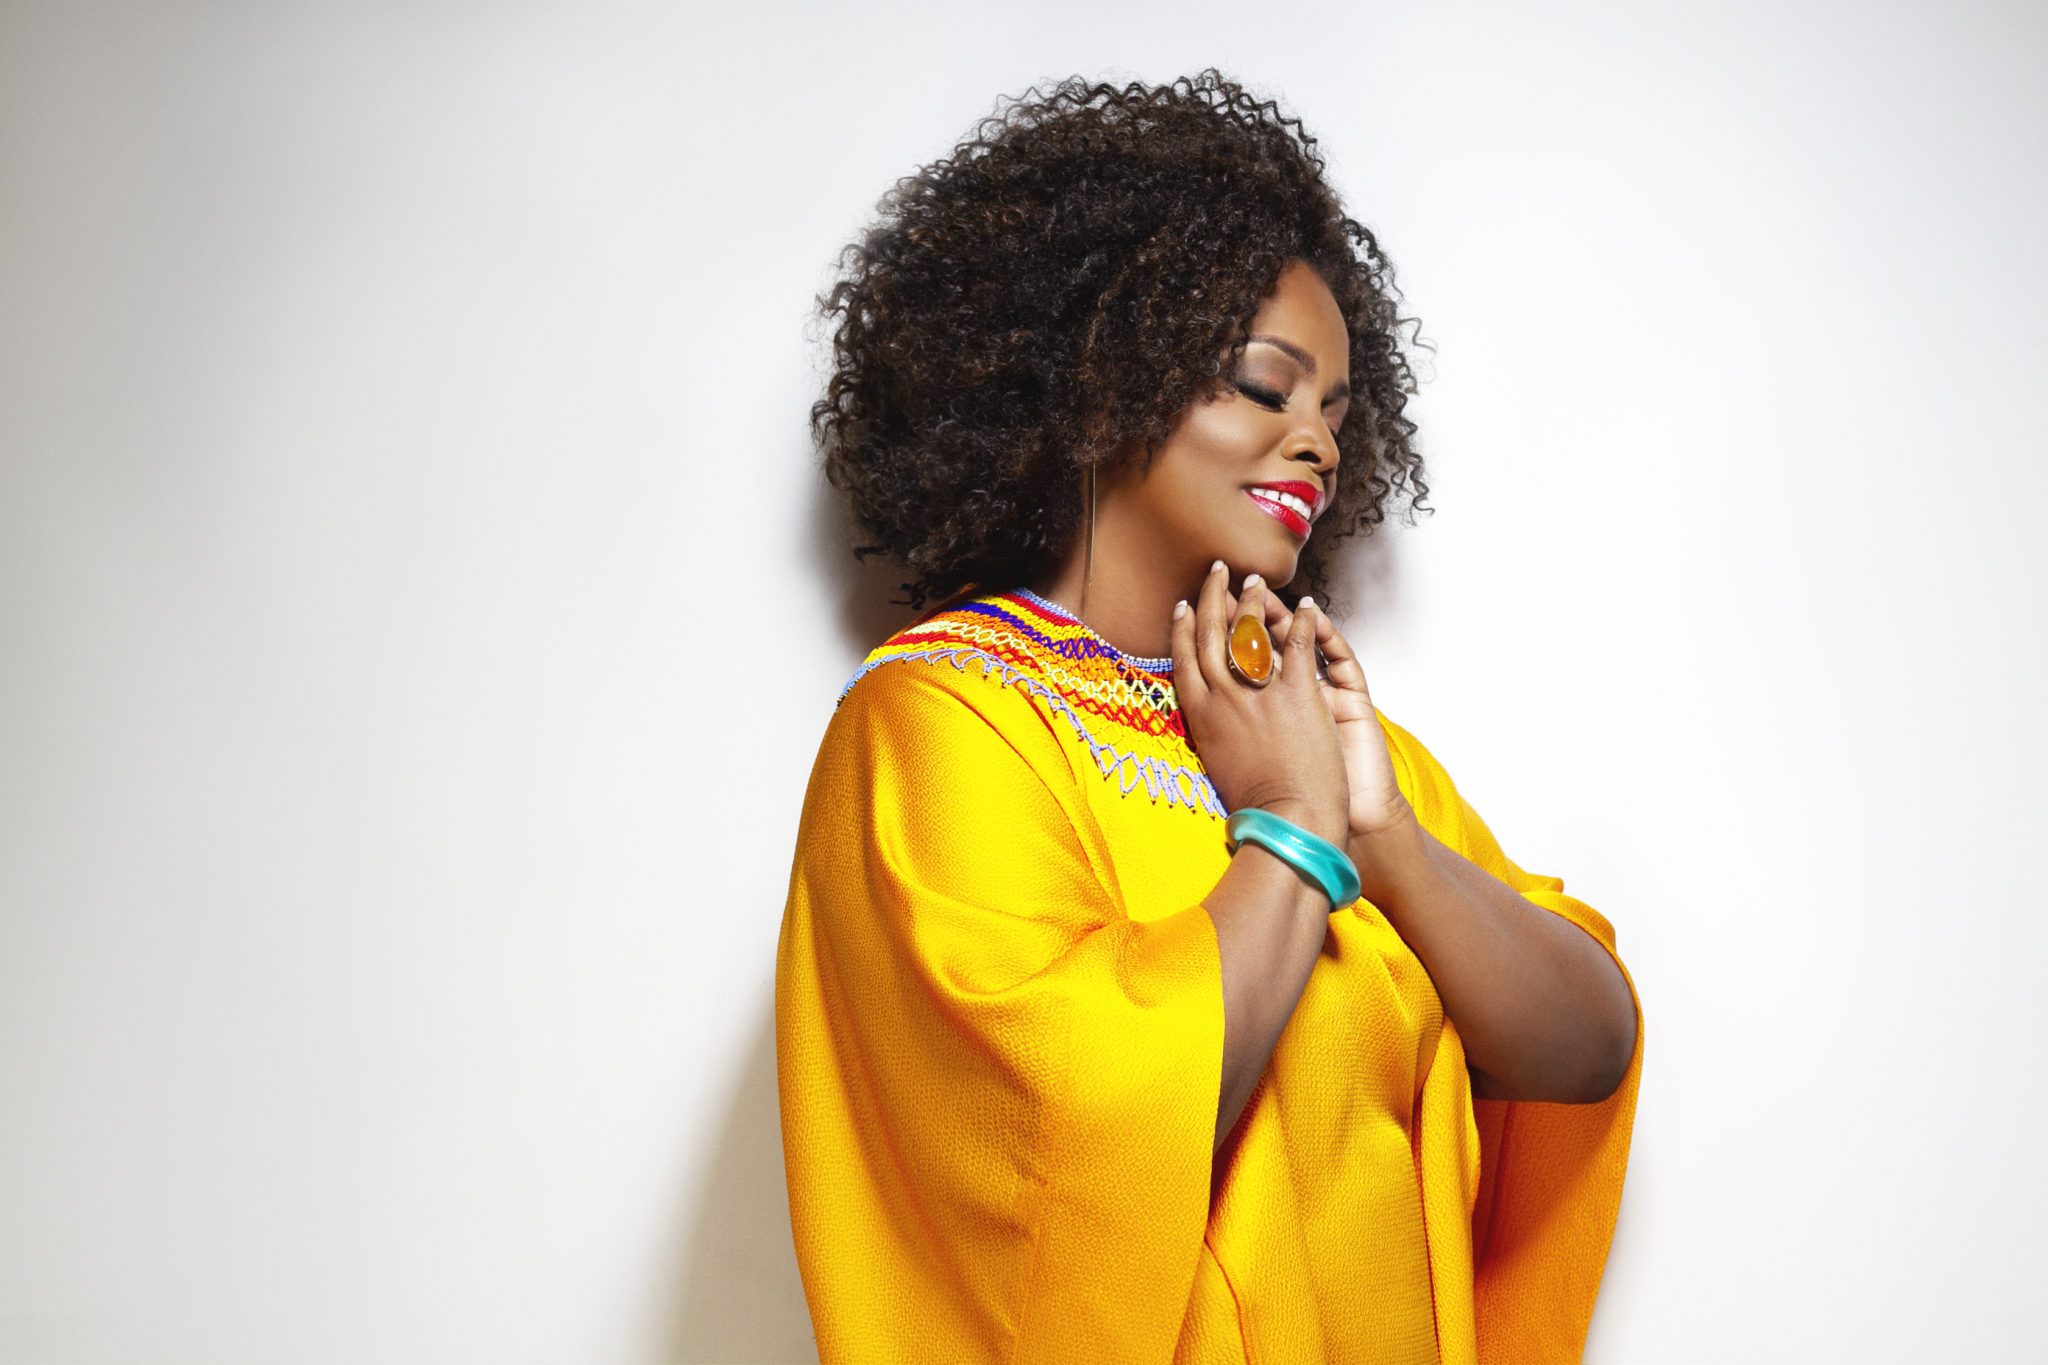 Dianne Reeves Shines at Berklee Performance Center with prowess of legendary jazz voice